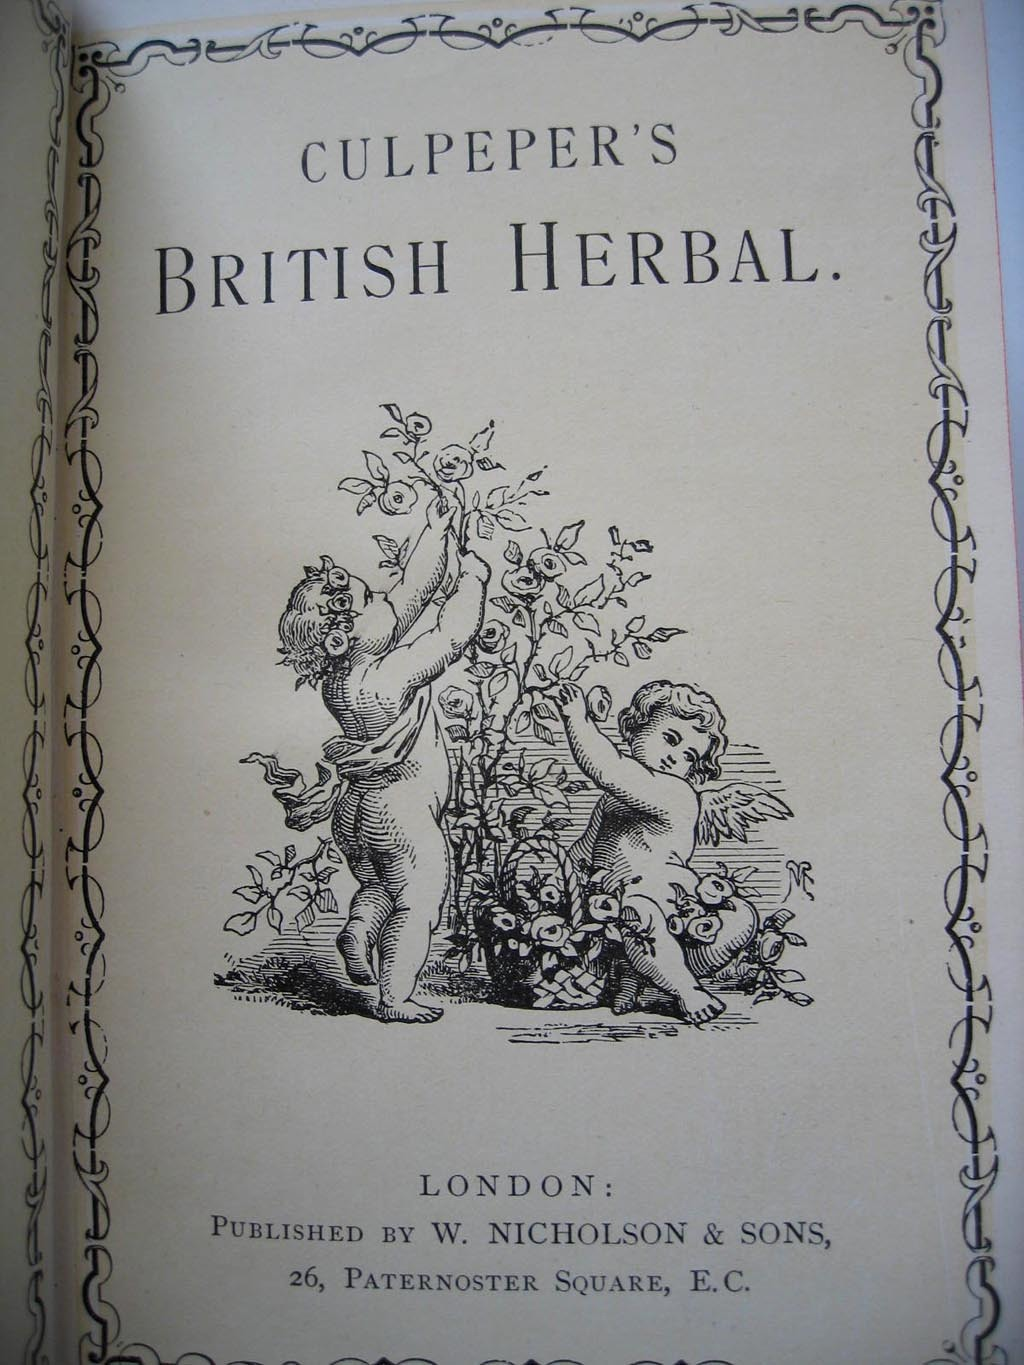 British herbal medicine association - Roll Over Large Image To Magnify Click Large Image To Zoom